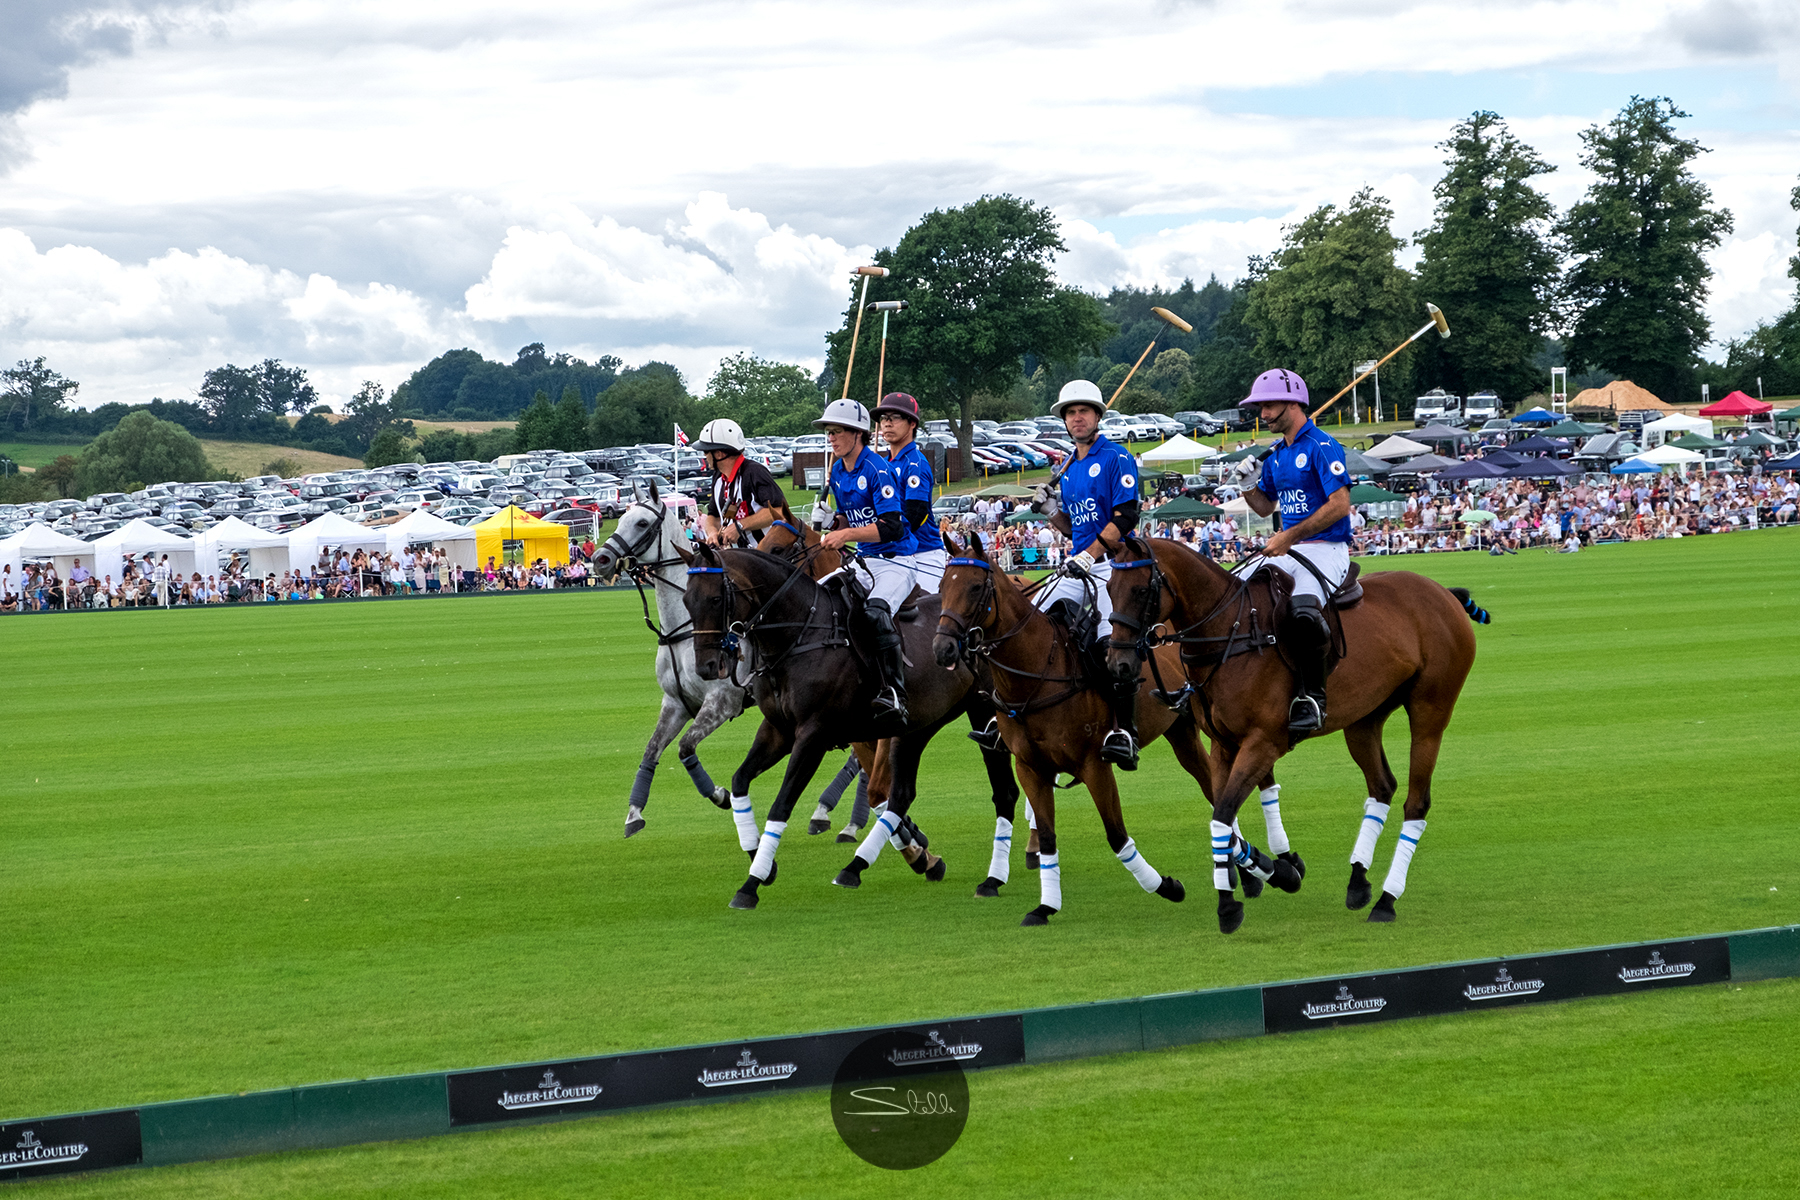 Stella Scordellis Jaeger-LeCoultre Gold Cup 2016 16 Watermarked.jpg